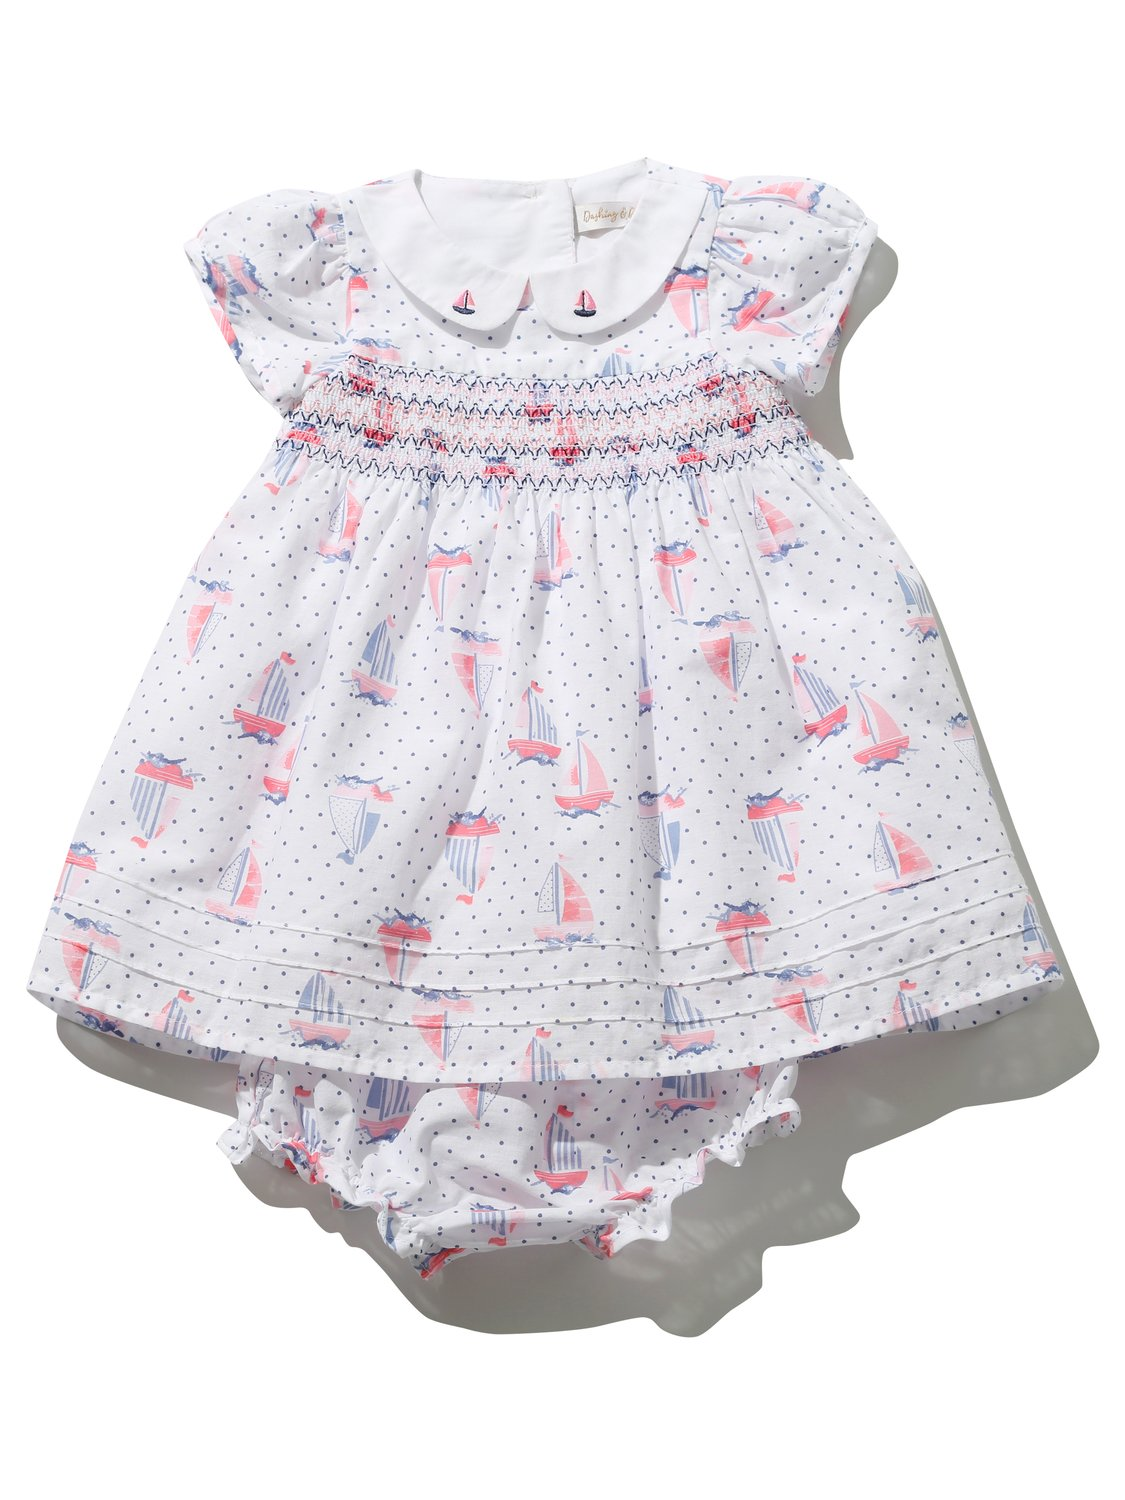 Baby girl cotton rich white sailboat print short sleeve smock dress and frilly knickers outfit set  - White